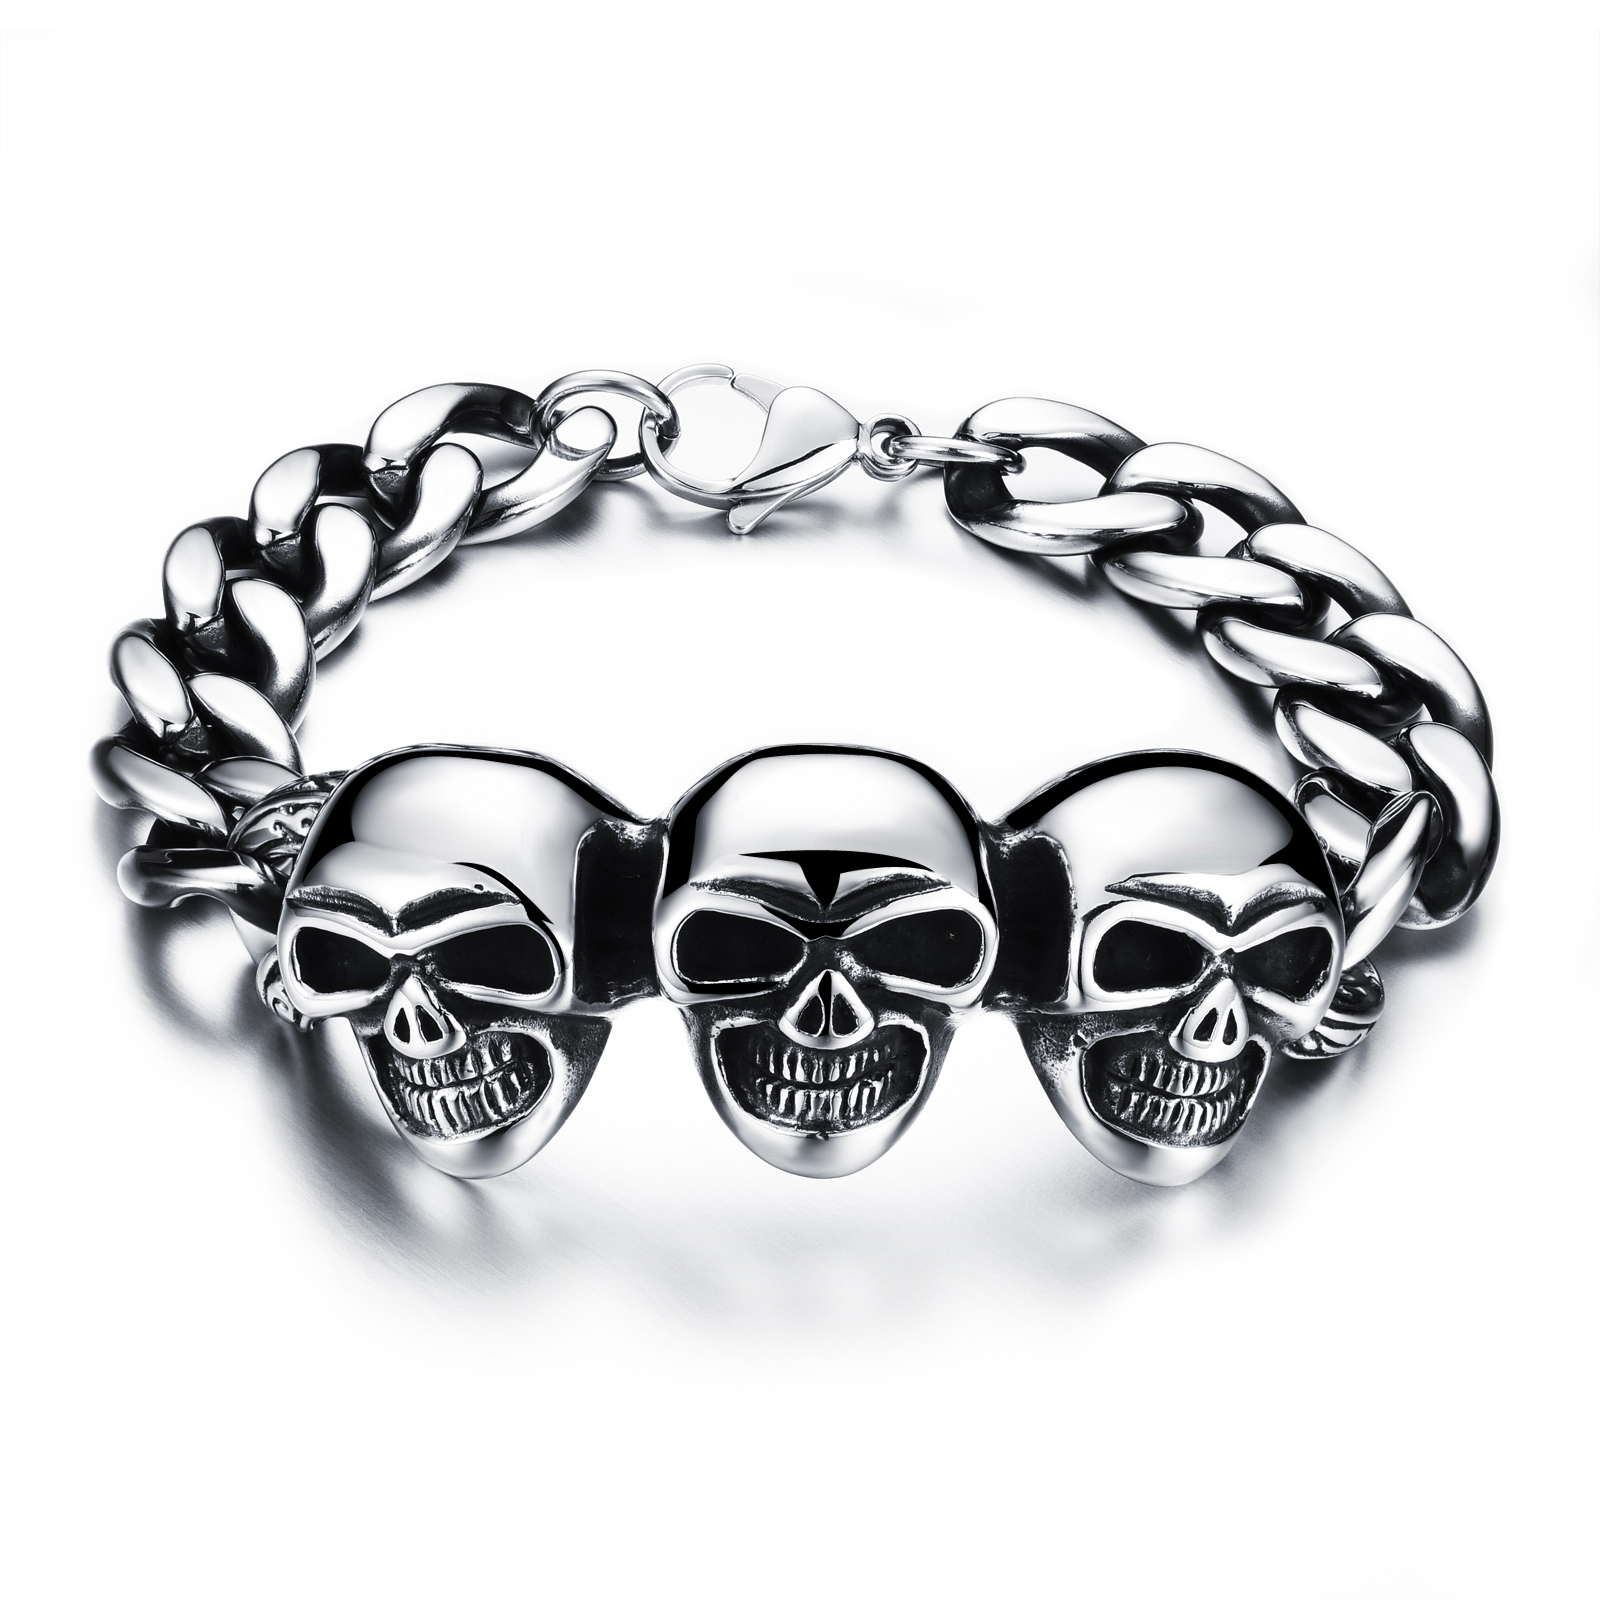 Personality Stainless Steel Skeleton Man Bracelets Punk Style 316L Steel Link Chain Bracelets Antique Men Jewelry(China (Mainland))